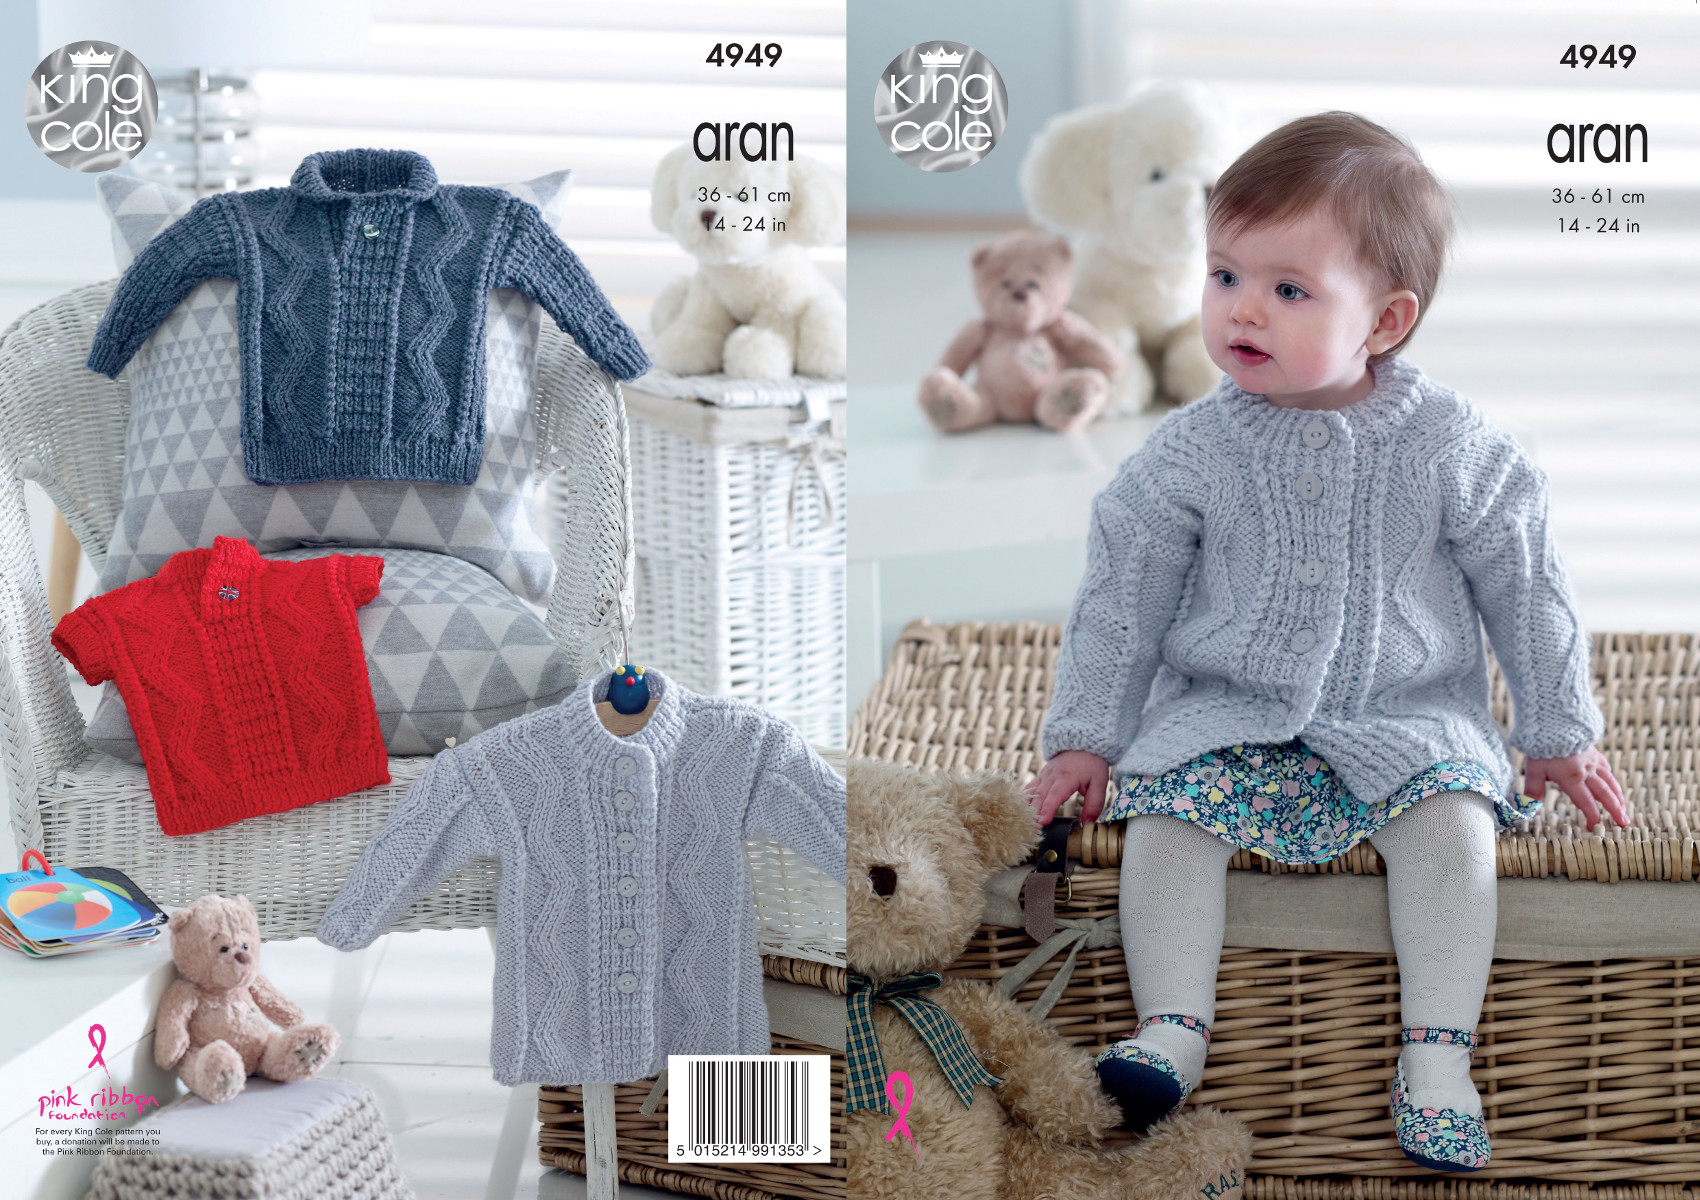 King Cole Baby Aran Knitting Pattern Cabled Coat Jumper Sleeveless ...